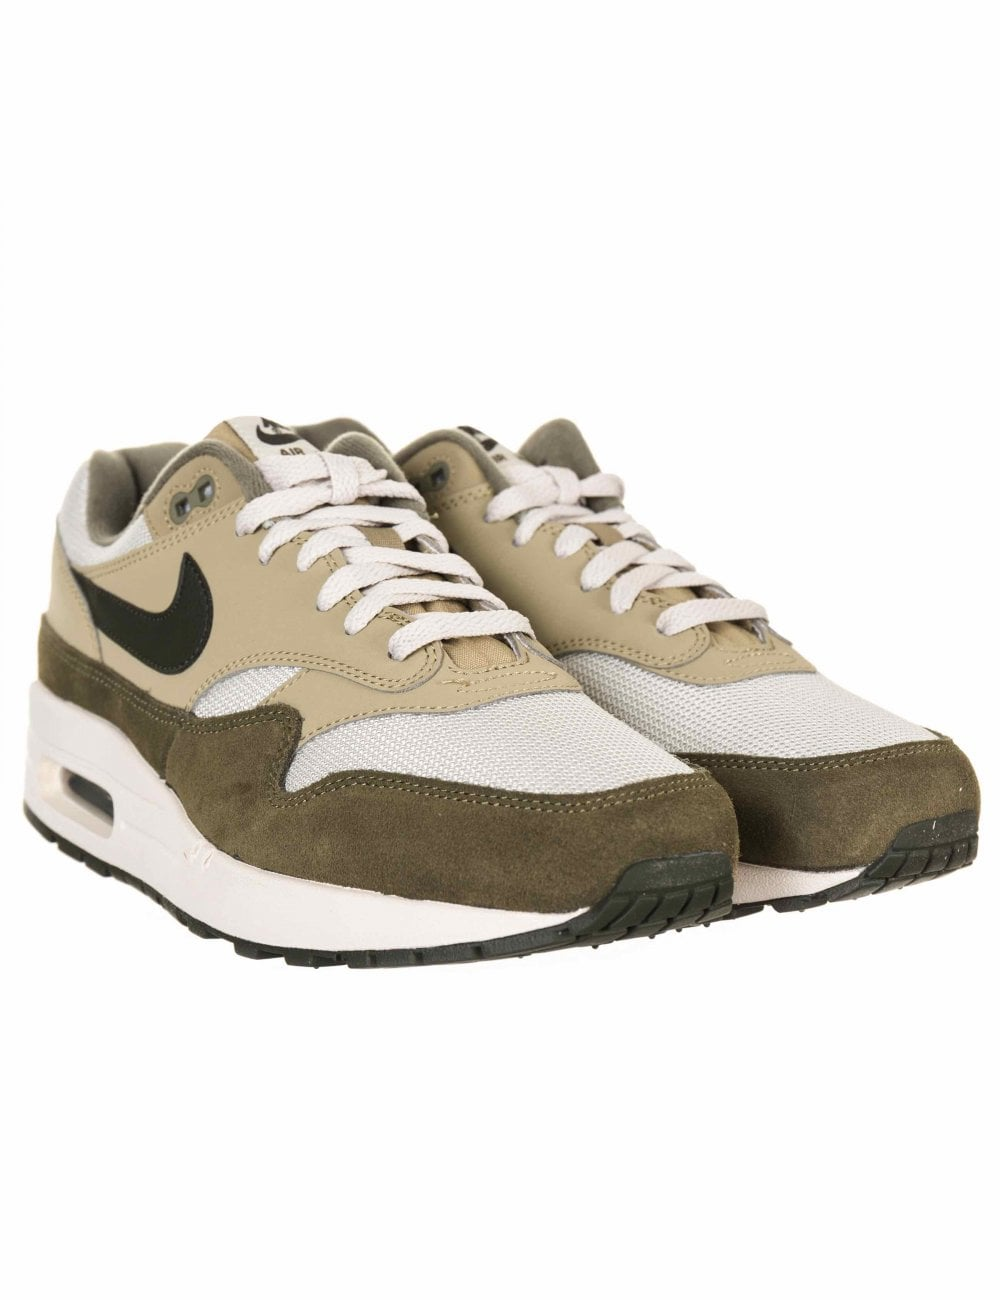 aef28009d471 Nike Air Max 1 Trainers - Medium Olive Sequoia - Footwear from Fat ...